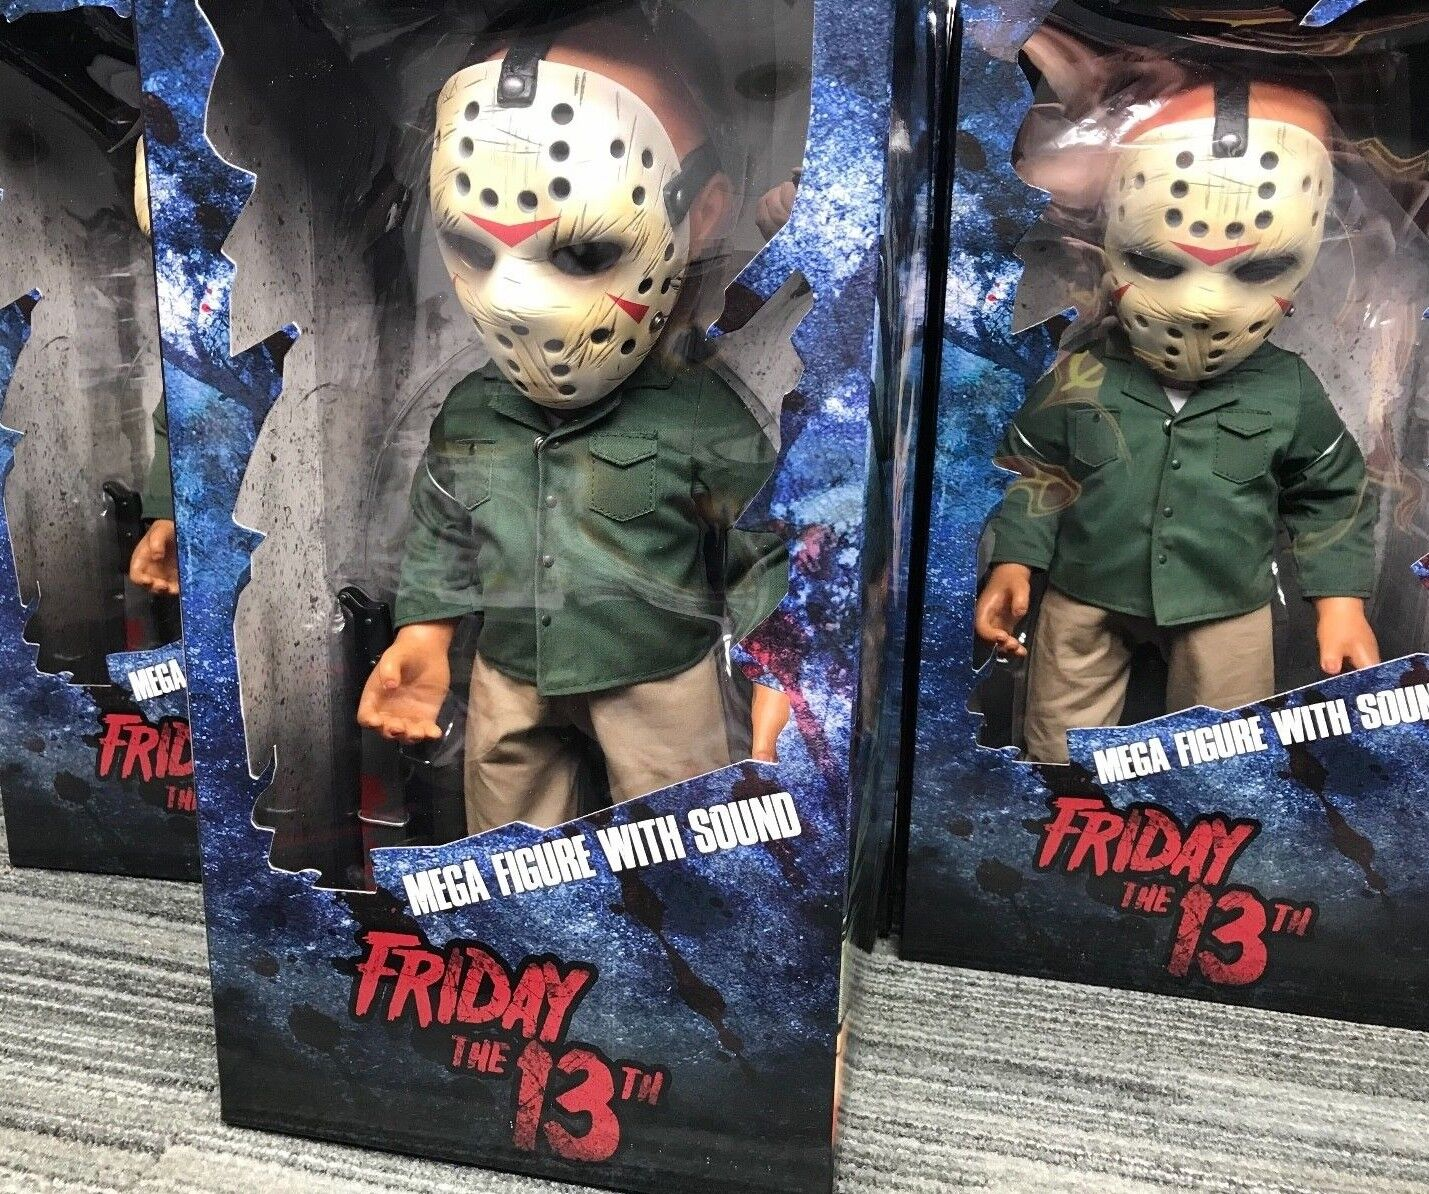 Friday 13th Jason Voorhees Mega Scale Acción Figura with Sound Mezco Venerdi' 13